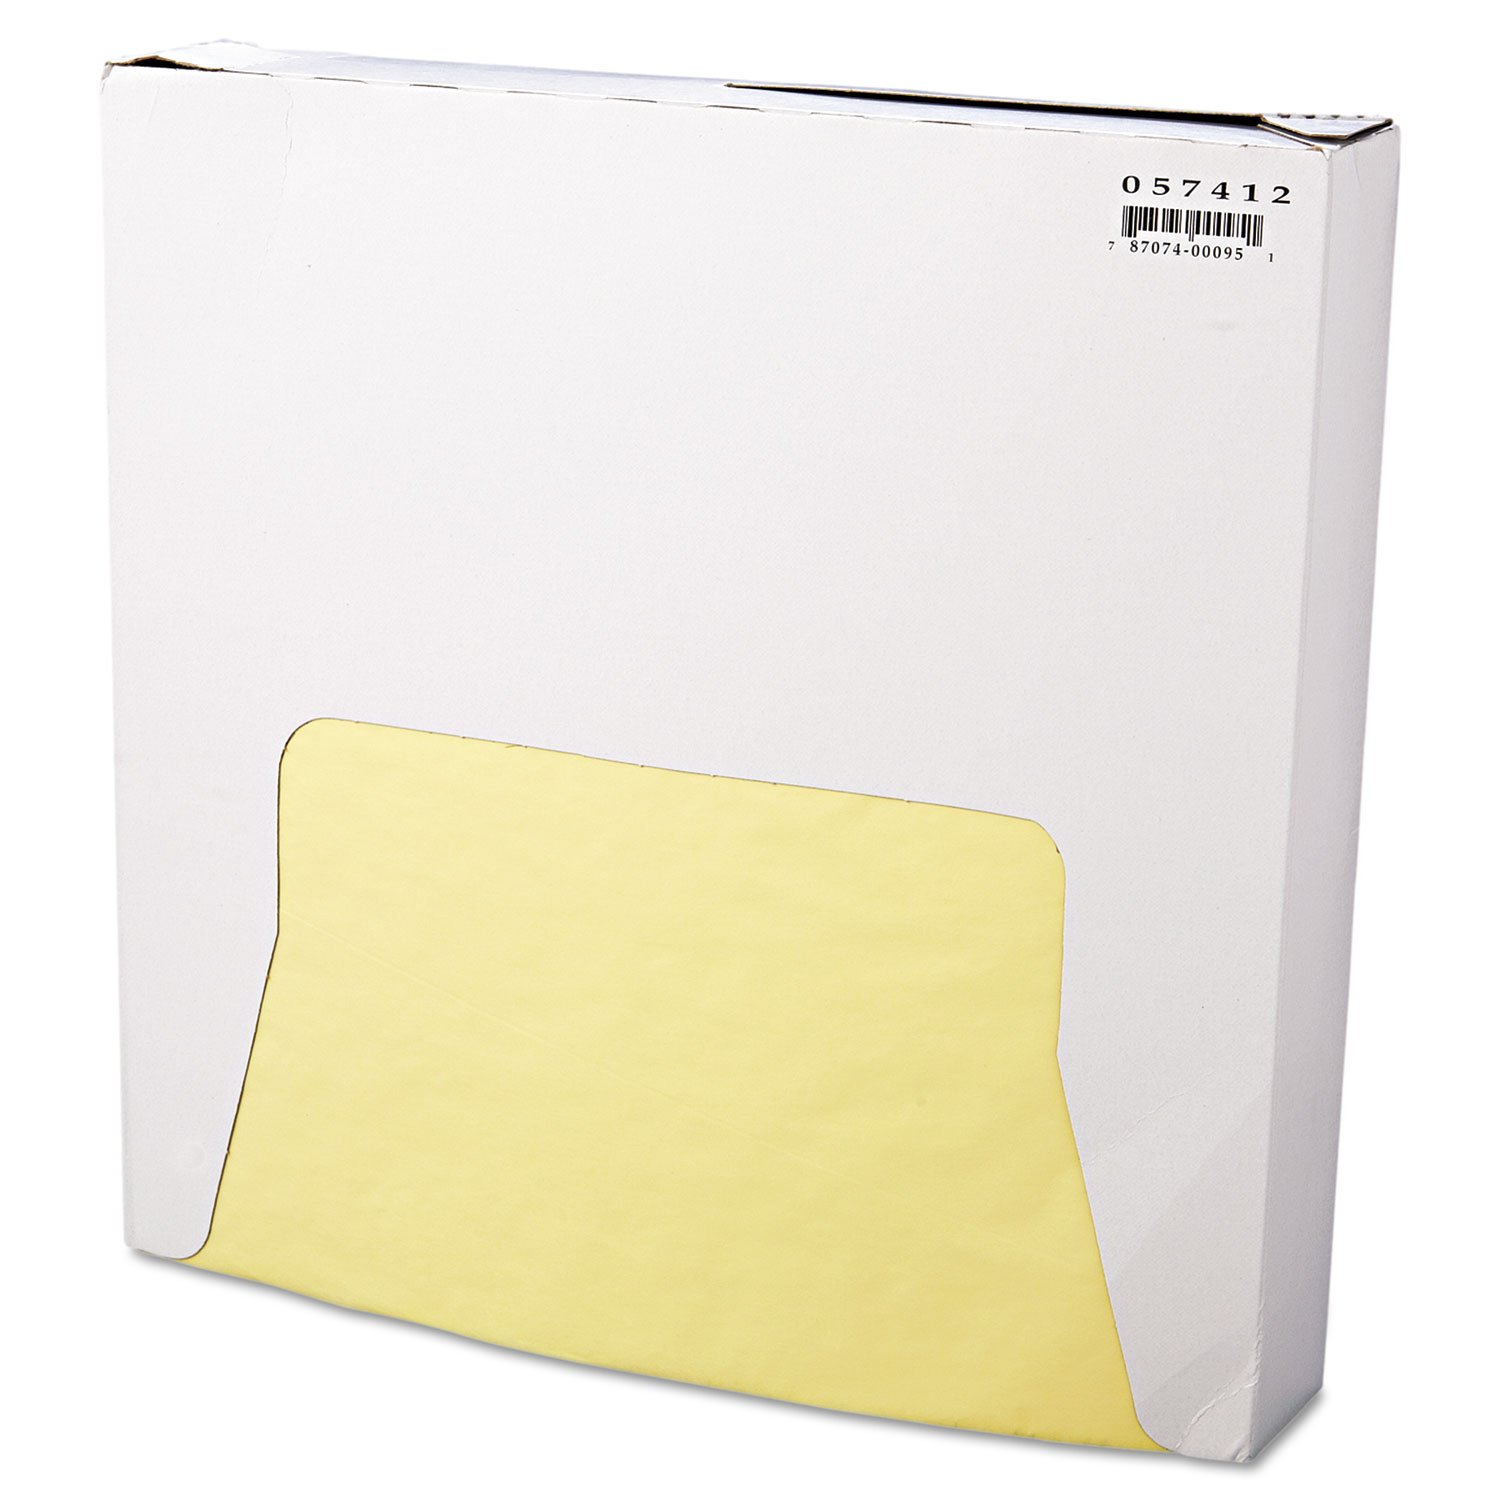 Grease-Resistant Wrap/liner, 12 X 12, Yellow, 1000/box, 5 Boxes/carton By: Bagcraft Papercon by Office Realm